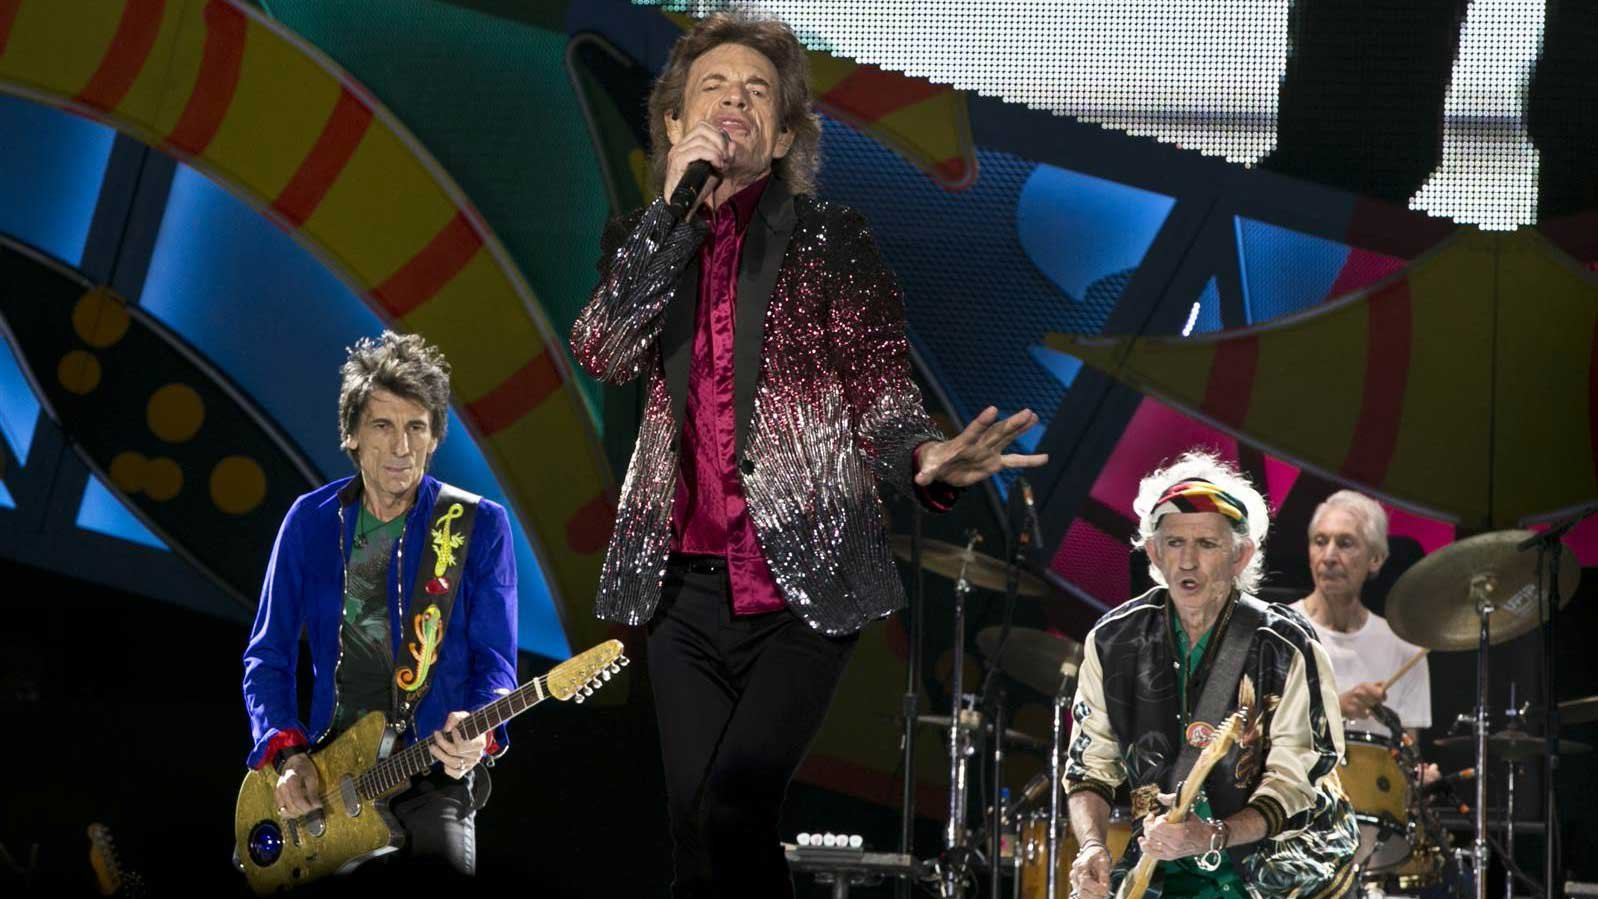 The Rolling Stone perform in Havana, Cuba. (Source: Associated Press)